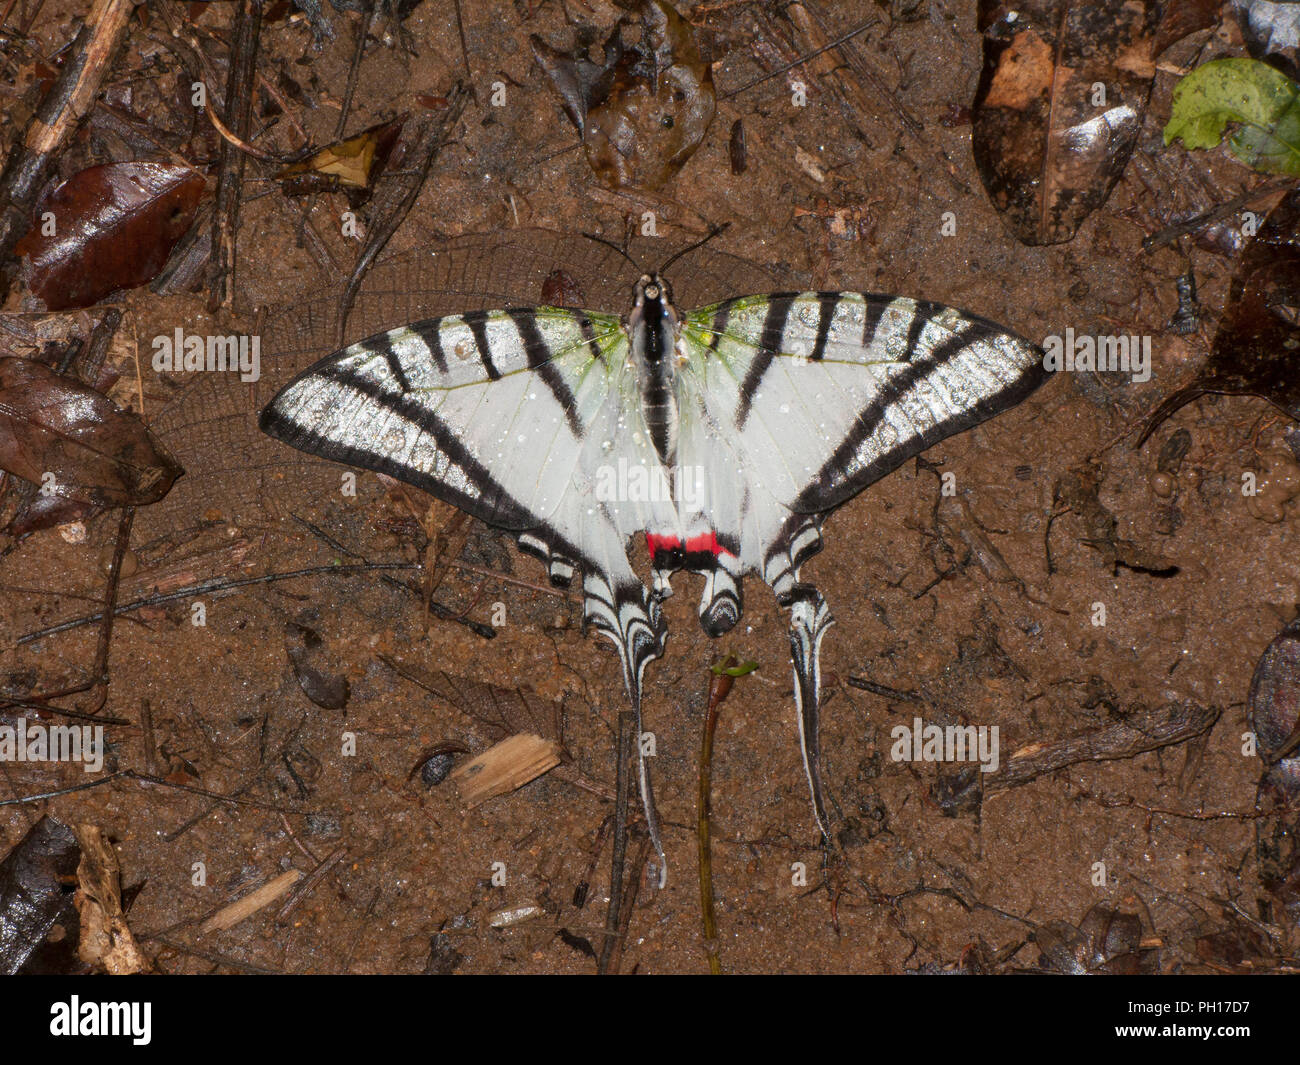 State Butterfly Stock Photos & State Butterfly Stock Images - Alamy